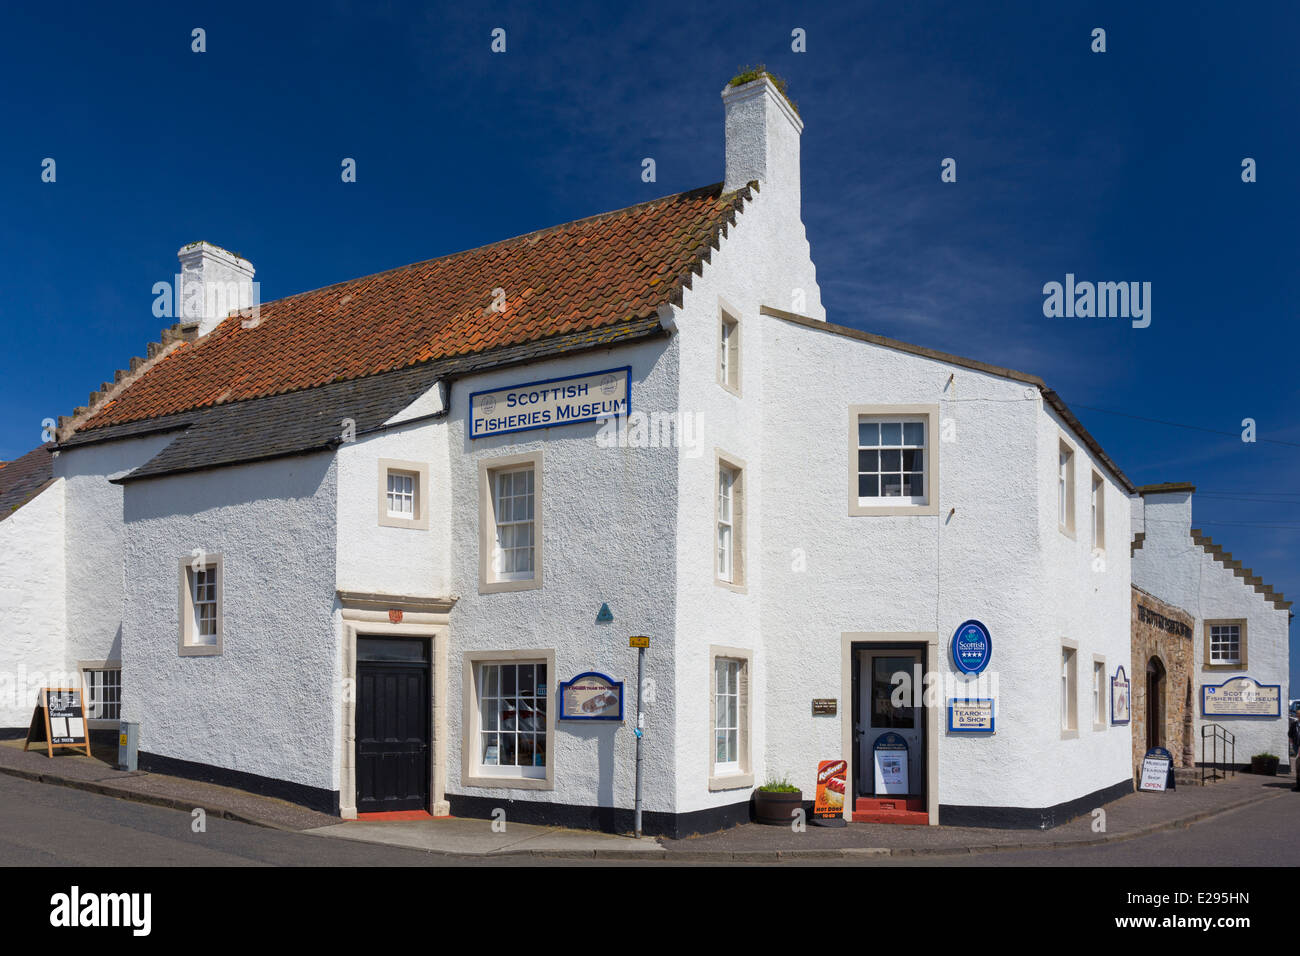 Scottish Fisheries Museum in Anstruther in the East Neuk of Fife showing the Traditional Crow Stepped or Corbie - Stock Image